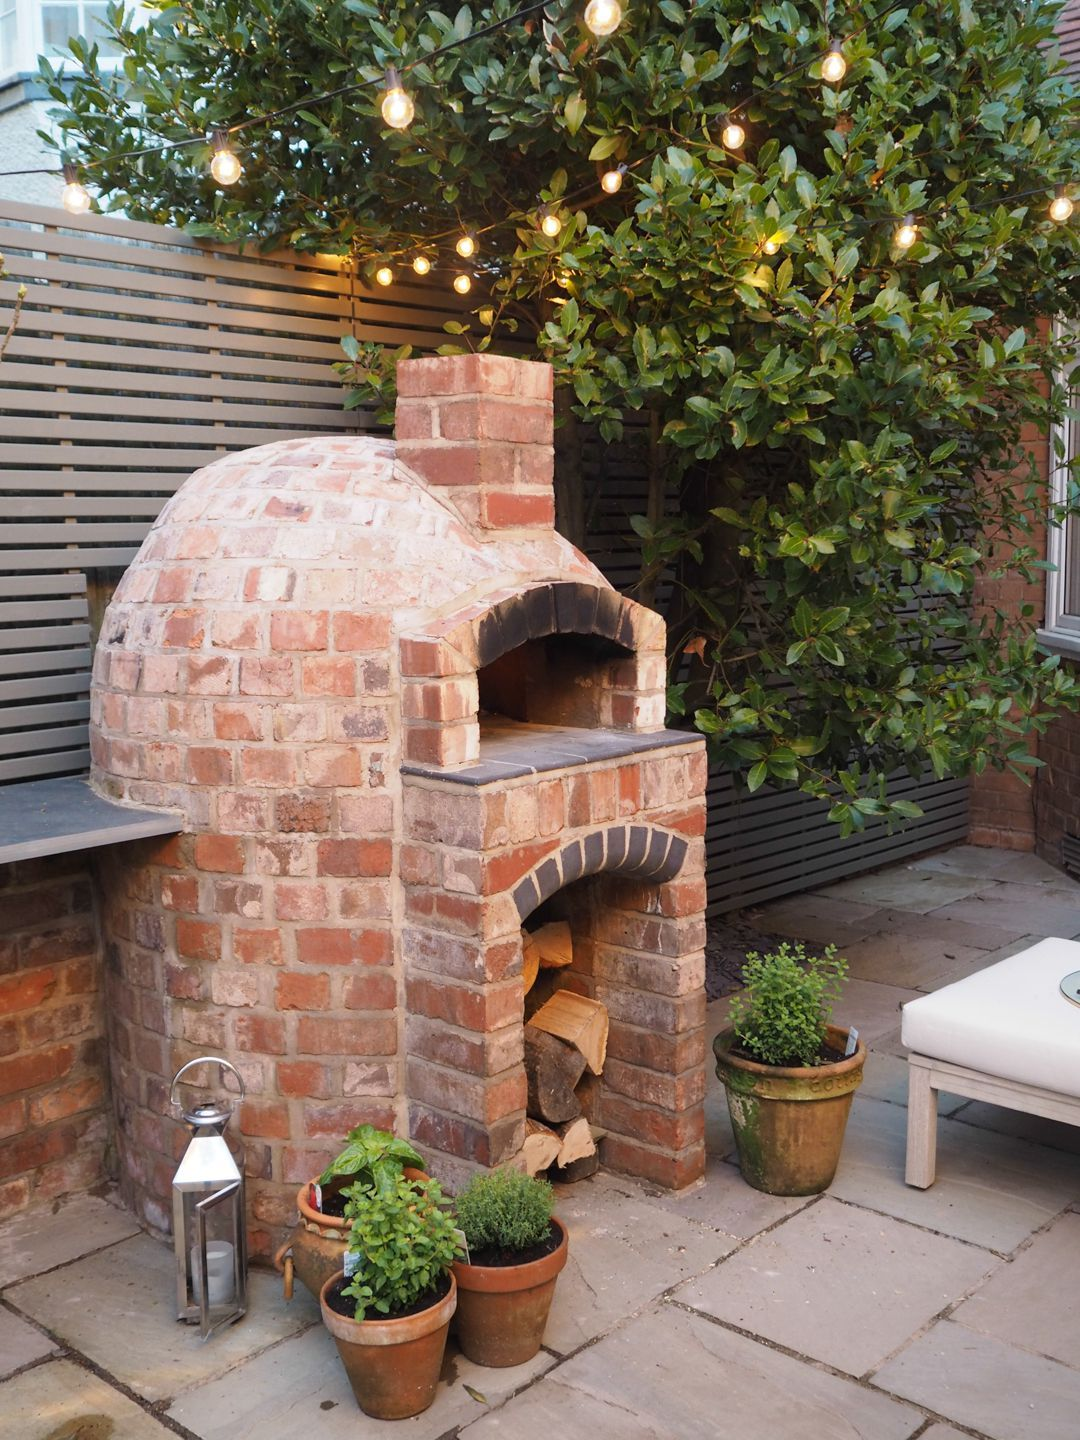 20 Gorgeous Outdoor Kitchen Ideas That Ll Put Your Indoor Setup To Shame Backyard Pizza Oven Backyard Patio Pizza Oven Outdoor Kitchen